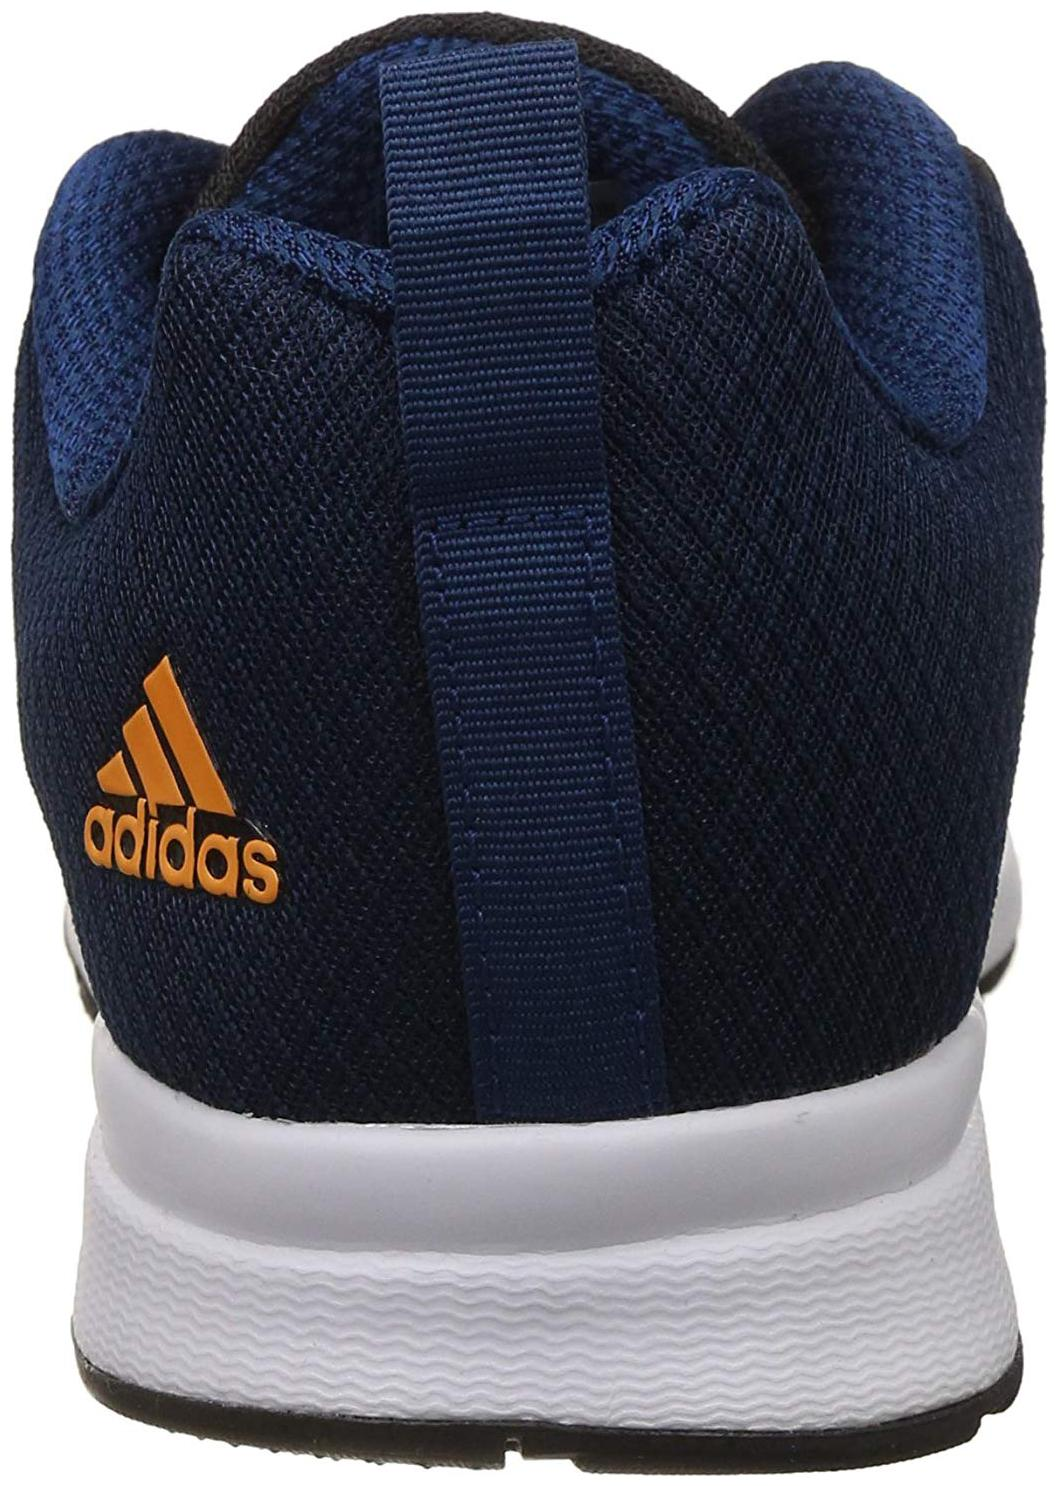 adidas men's adispree 3 m running shoes buy clothes shoes online